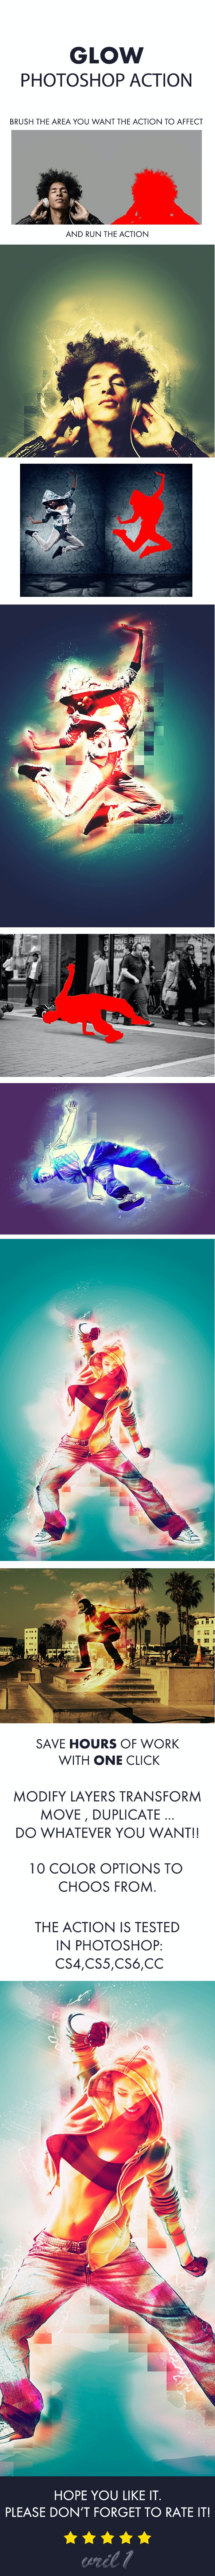 Glow Photoshop Action - Photo Effects Actions